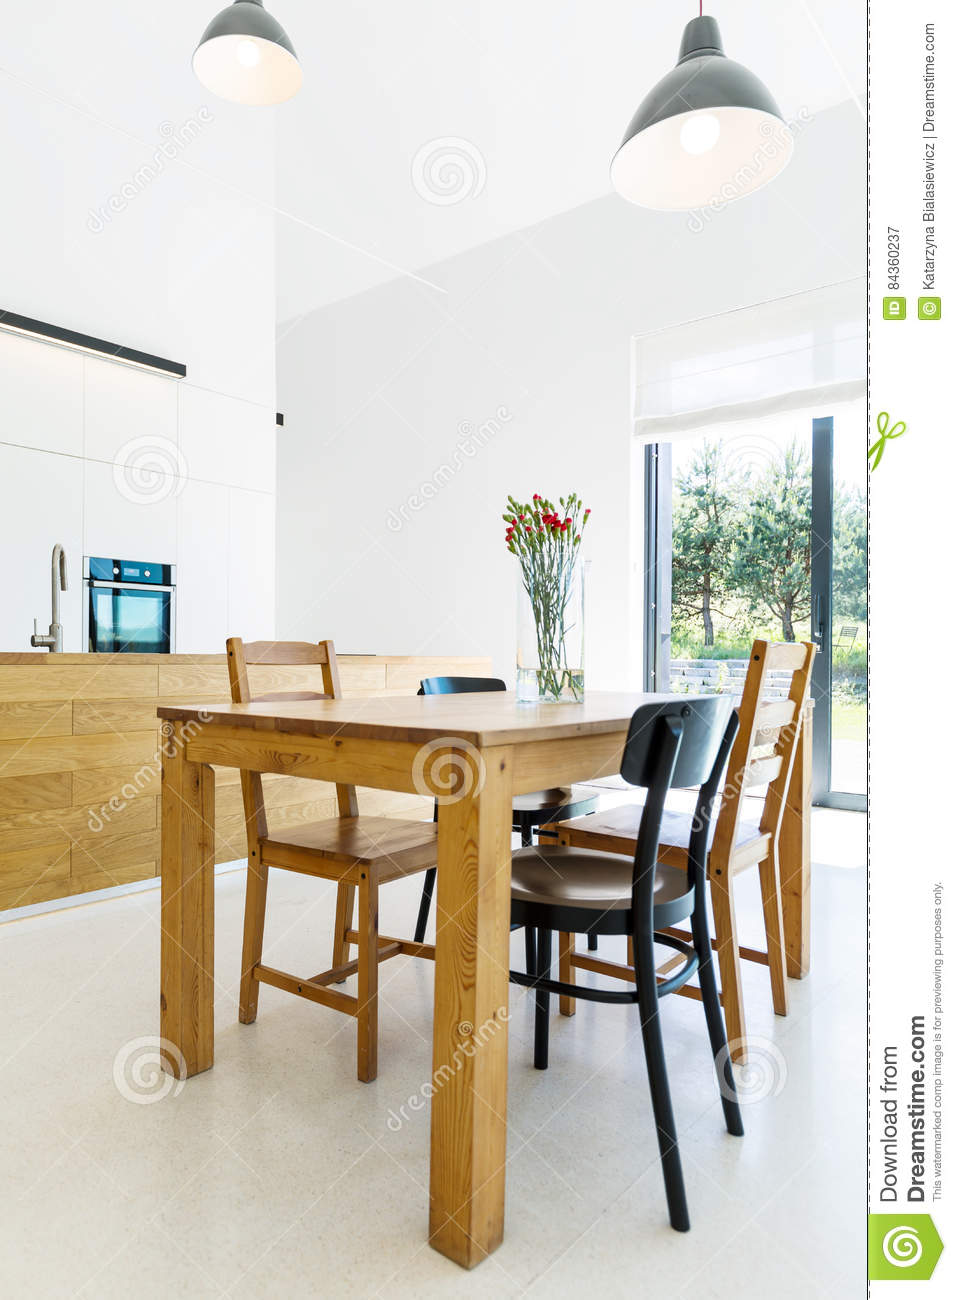 Perfect Download House Interior With Simpe Wooden Furnitures Stock Image   Image Of  Layout, Space: